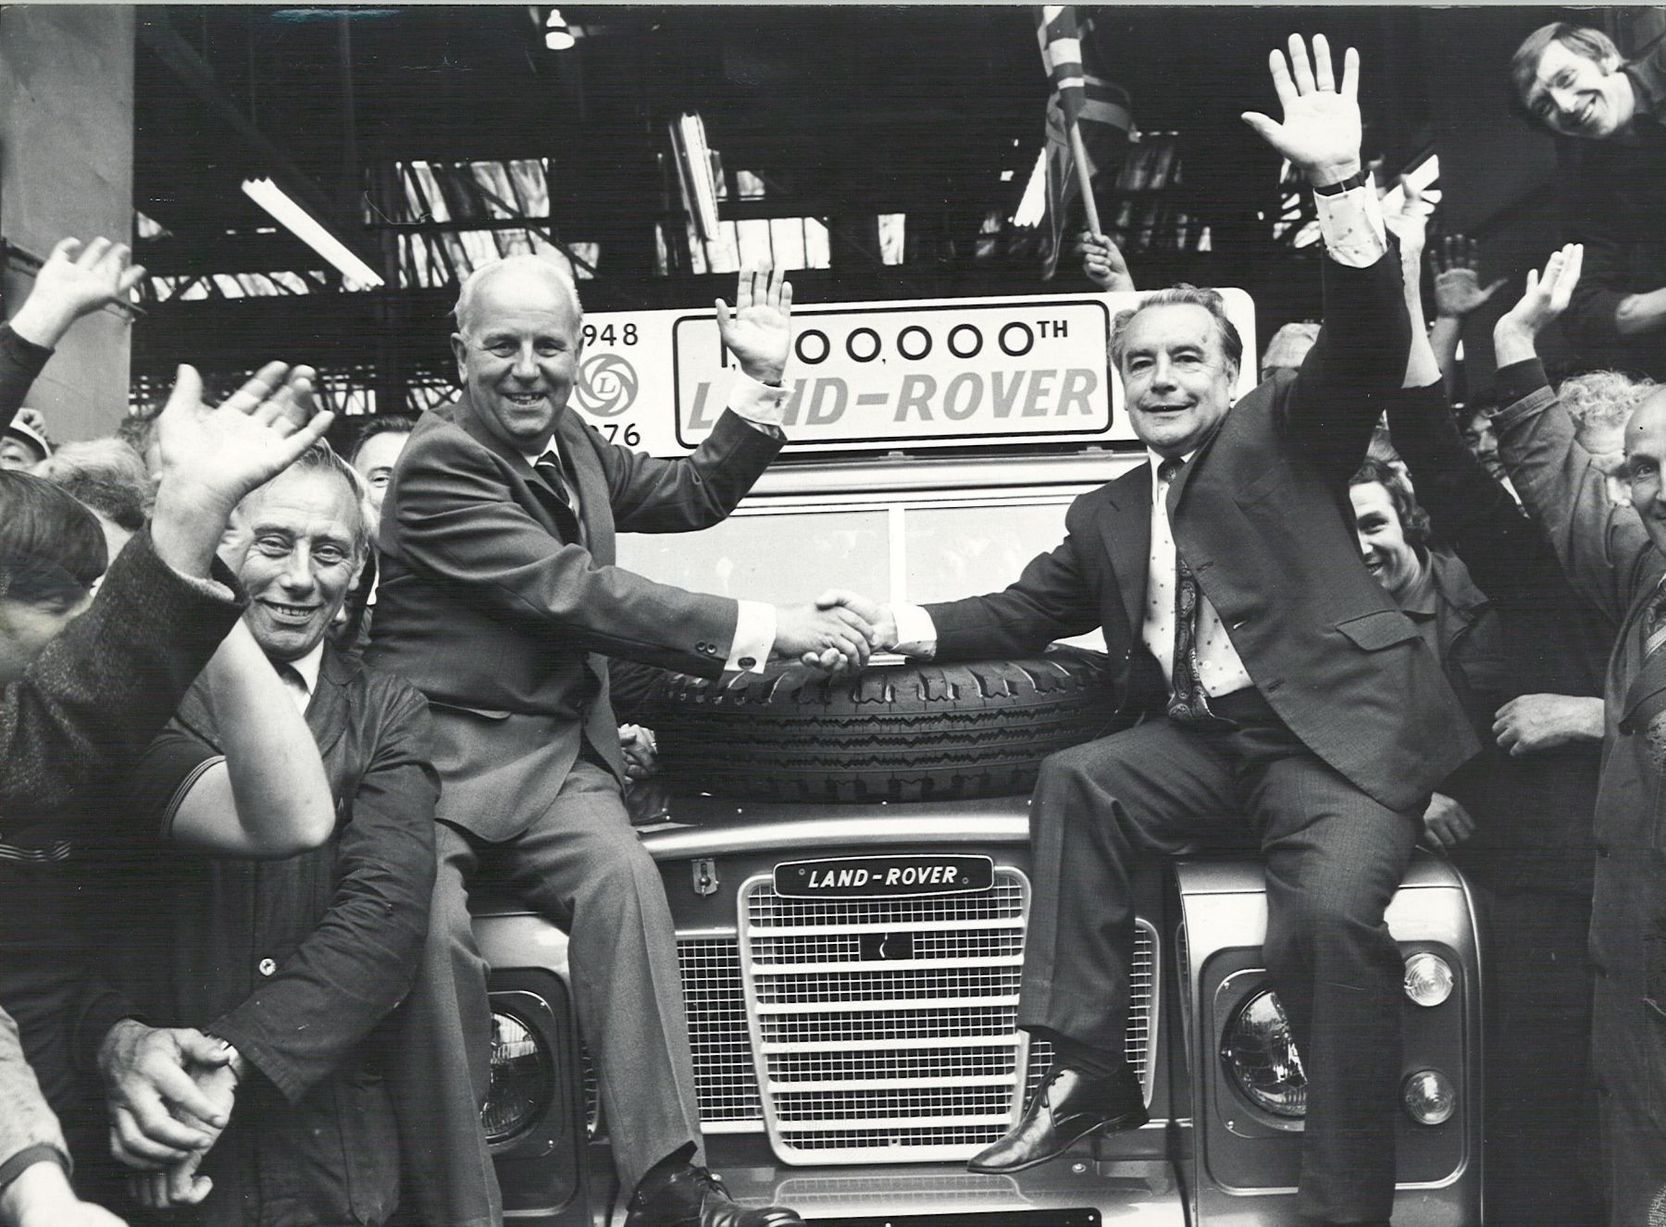 The millionth Land Rover comes of the assembly line at Solihull on June 17, 1976, with two veterans of the series perched on the wings. Mr David Kemp (left) has been building the vehicles since production started in 1948, and Mr Tom Barton, known in the factory as Mr Land Rover, helped with the original design.